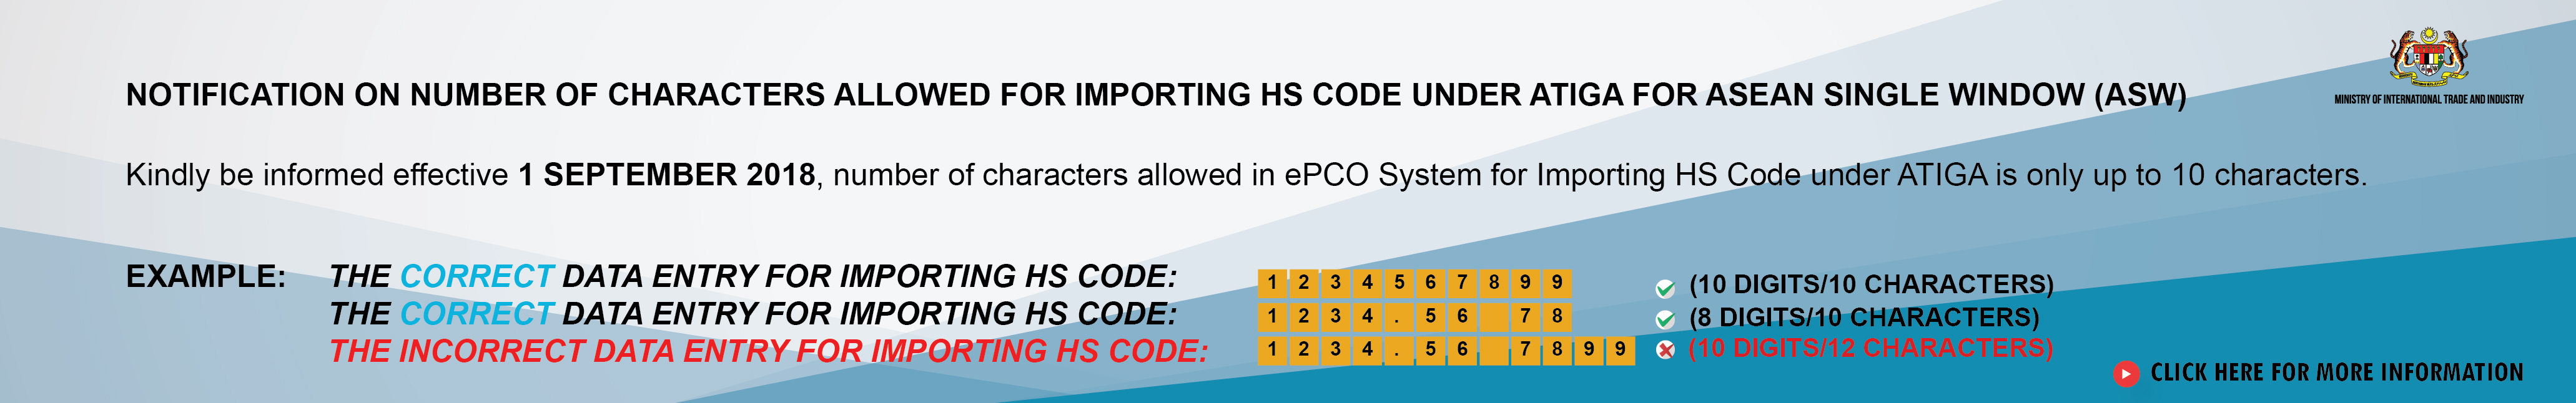 NOTIFICATION ON NUMBER OF CHARACTERS ALLOWED FOR IMPORTING HS CODE UNDER ATIGA FOR ASEAN SINGLE WINDOW (ASW)